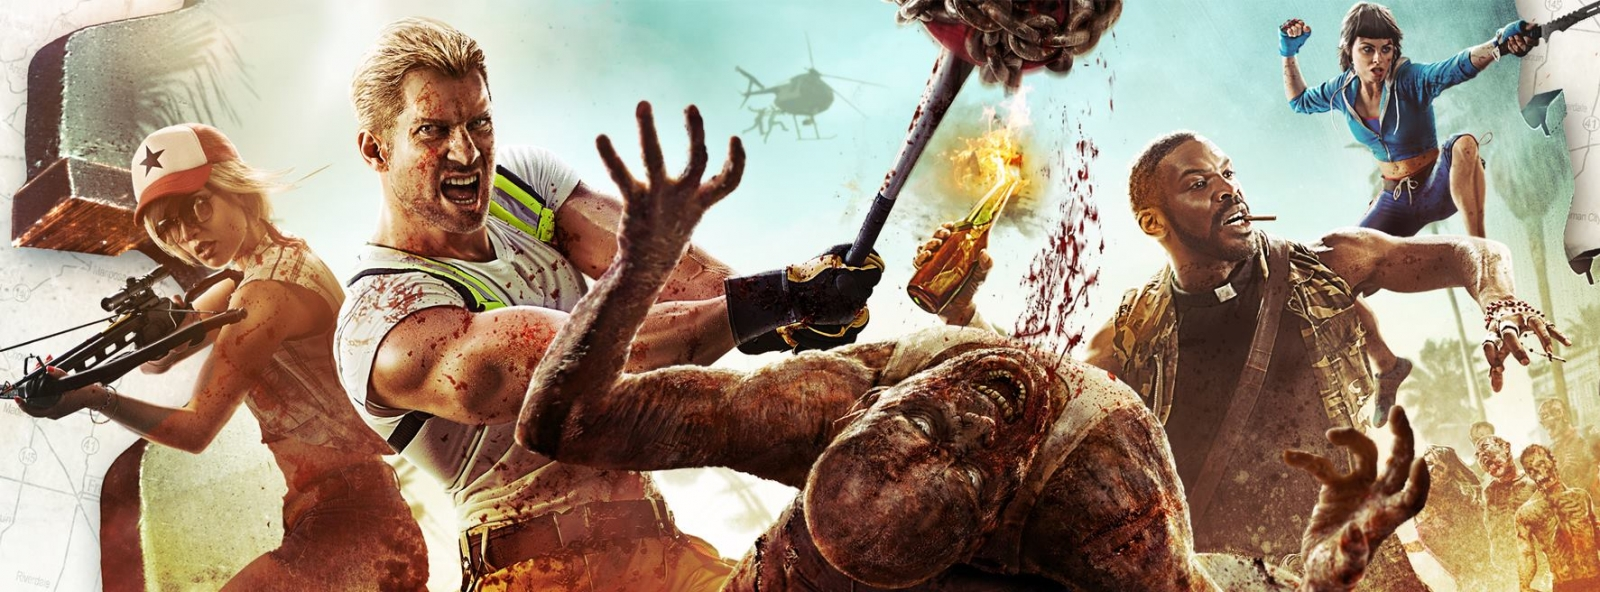 Dead Island Movie: Will It be Based on the Game's Plot of 'Dream Vacation Gone Horribly Wrong'